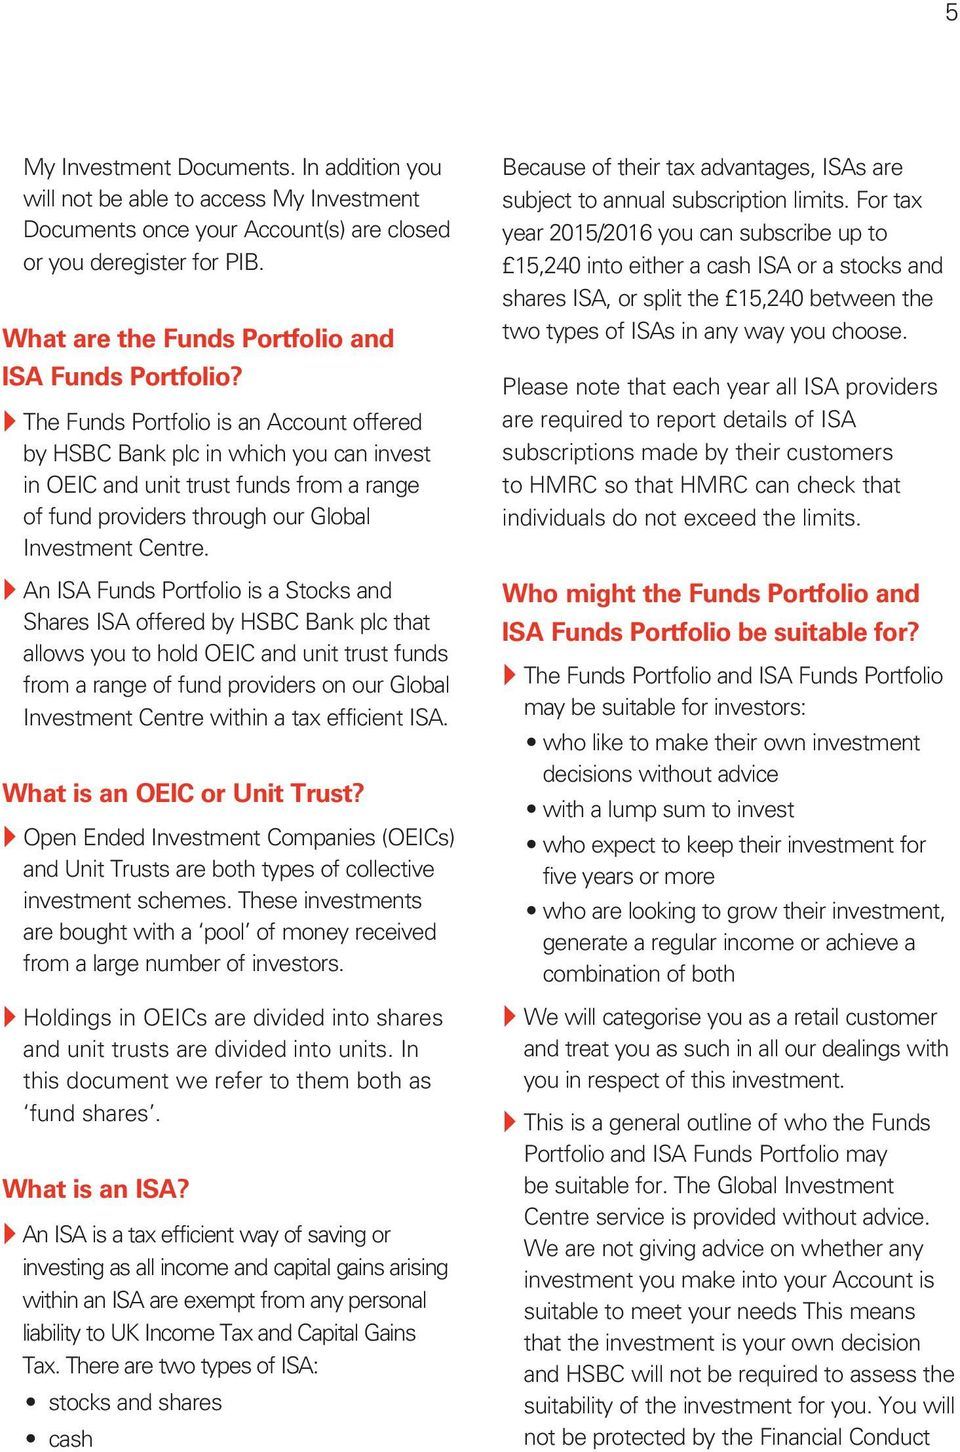 } The Funds Portfolio is an Account offered by HSBC Bank plc in which you can invest in OEIC and unit trust funds from a range of fund providers through our Global Investment Centre.